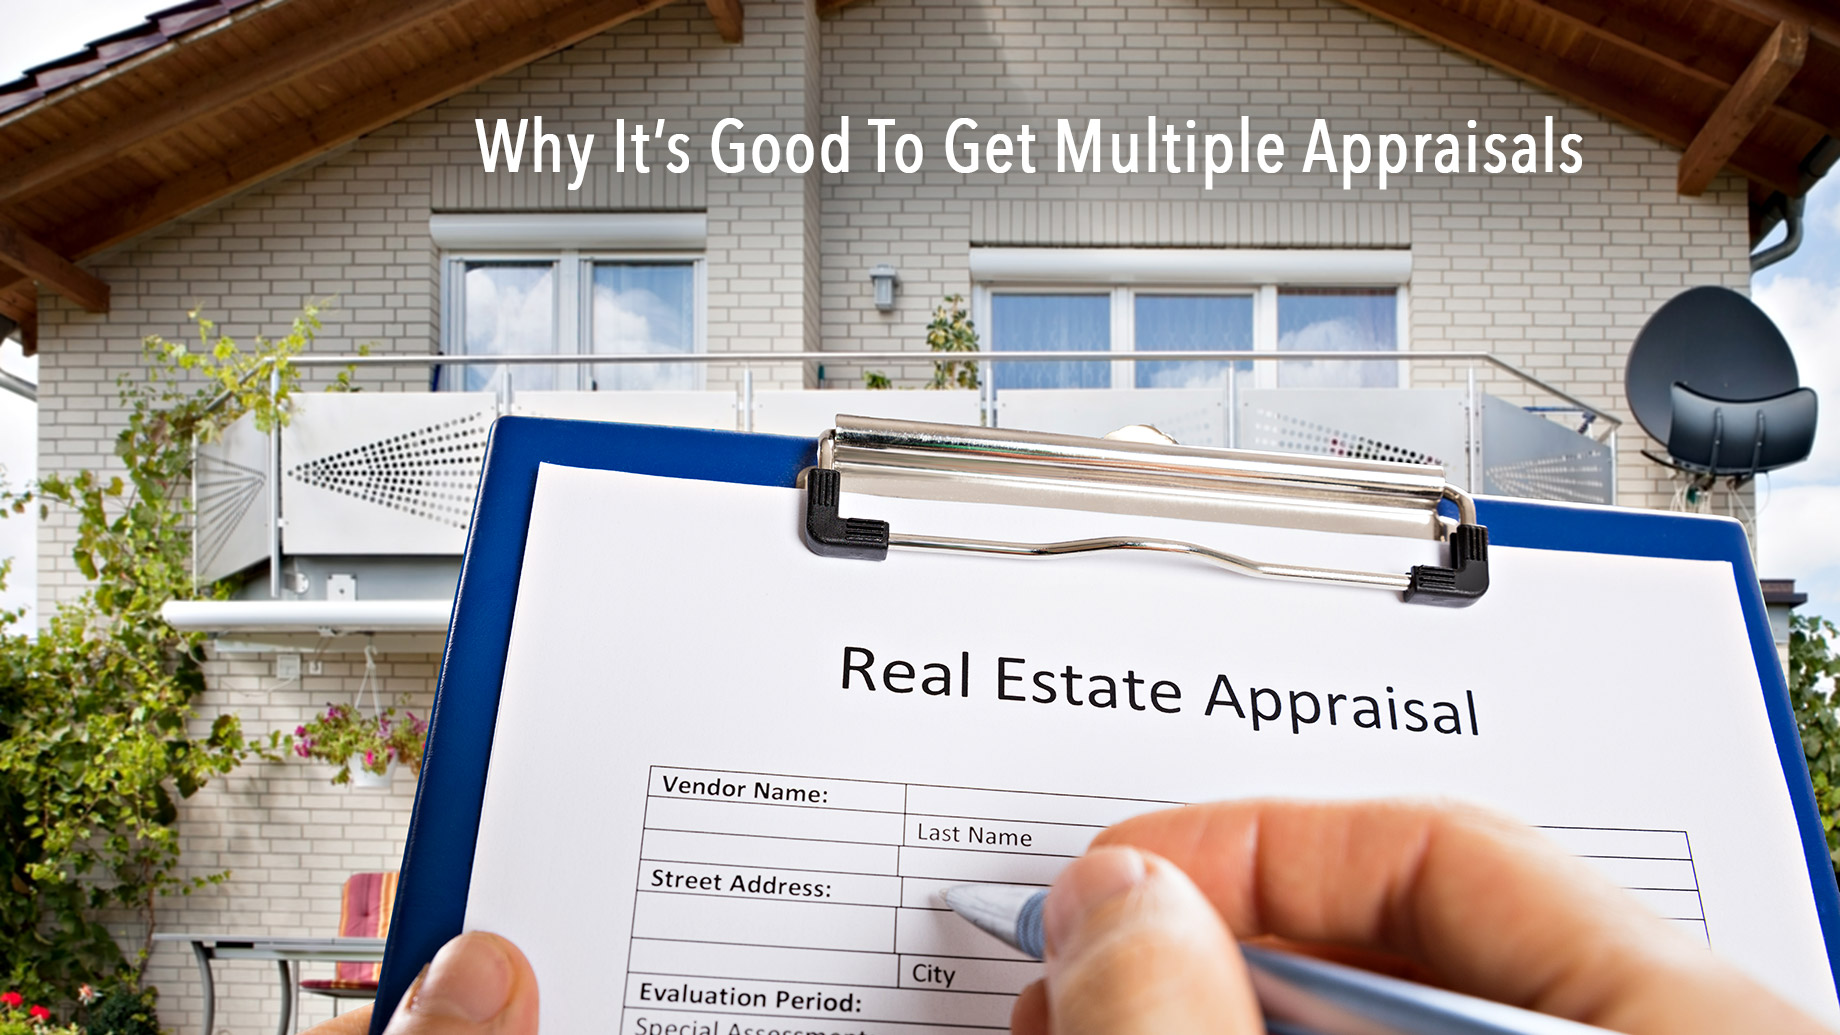 Why It's Good To Get Multiple Appraisals